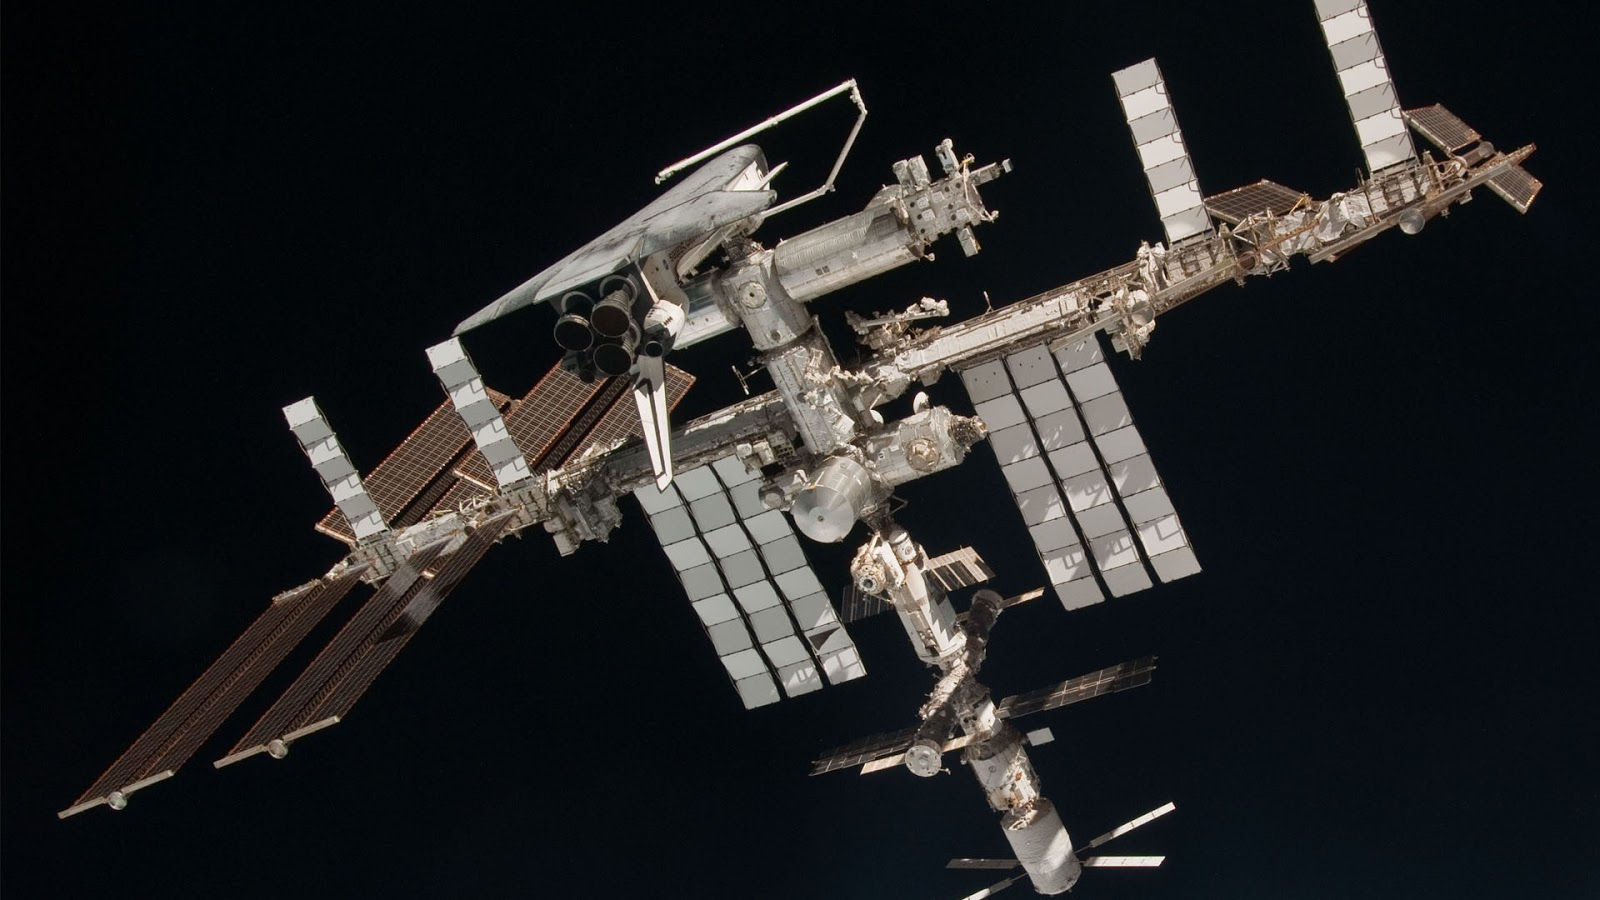 32 space station hd - photo #17